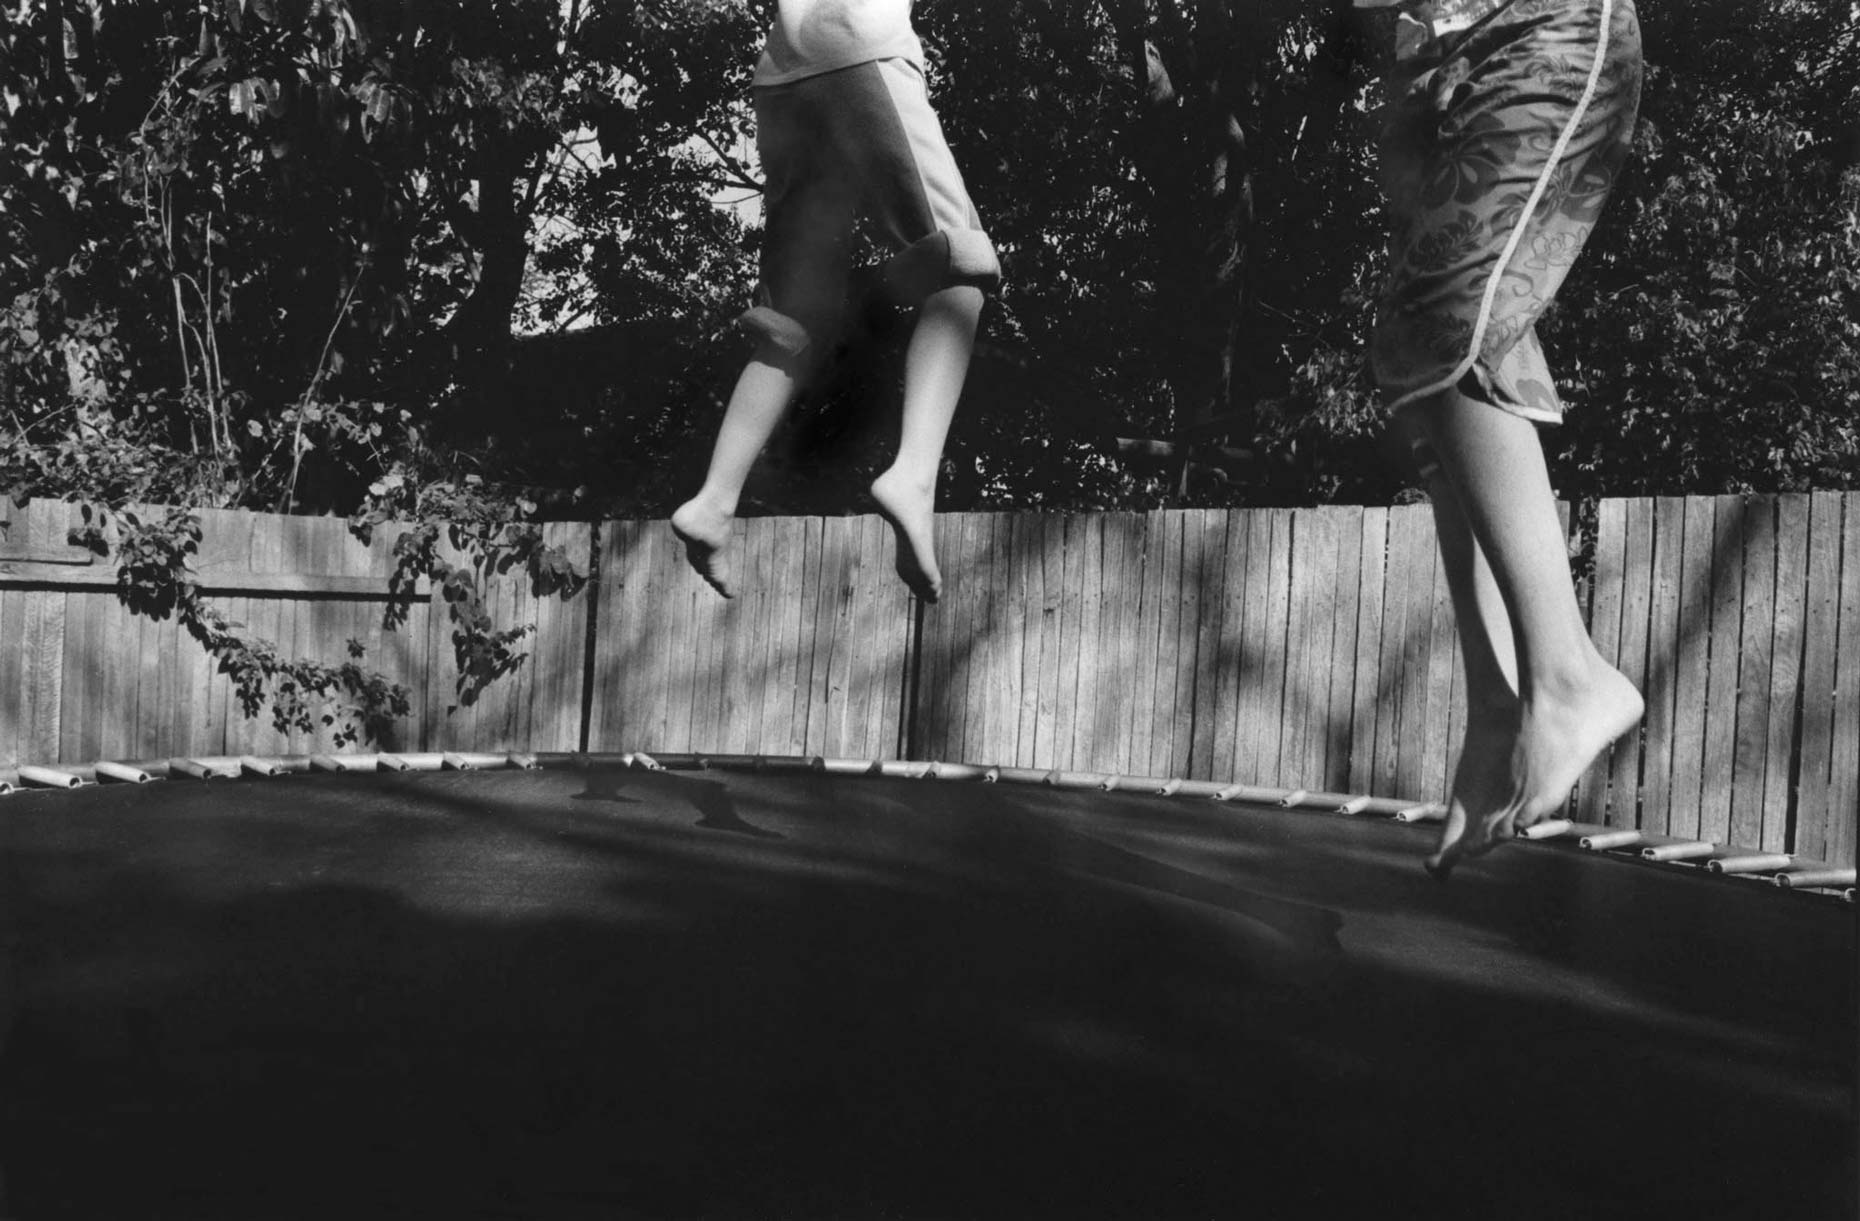 Visible,-Now-trampoline-59